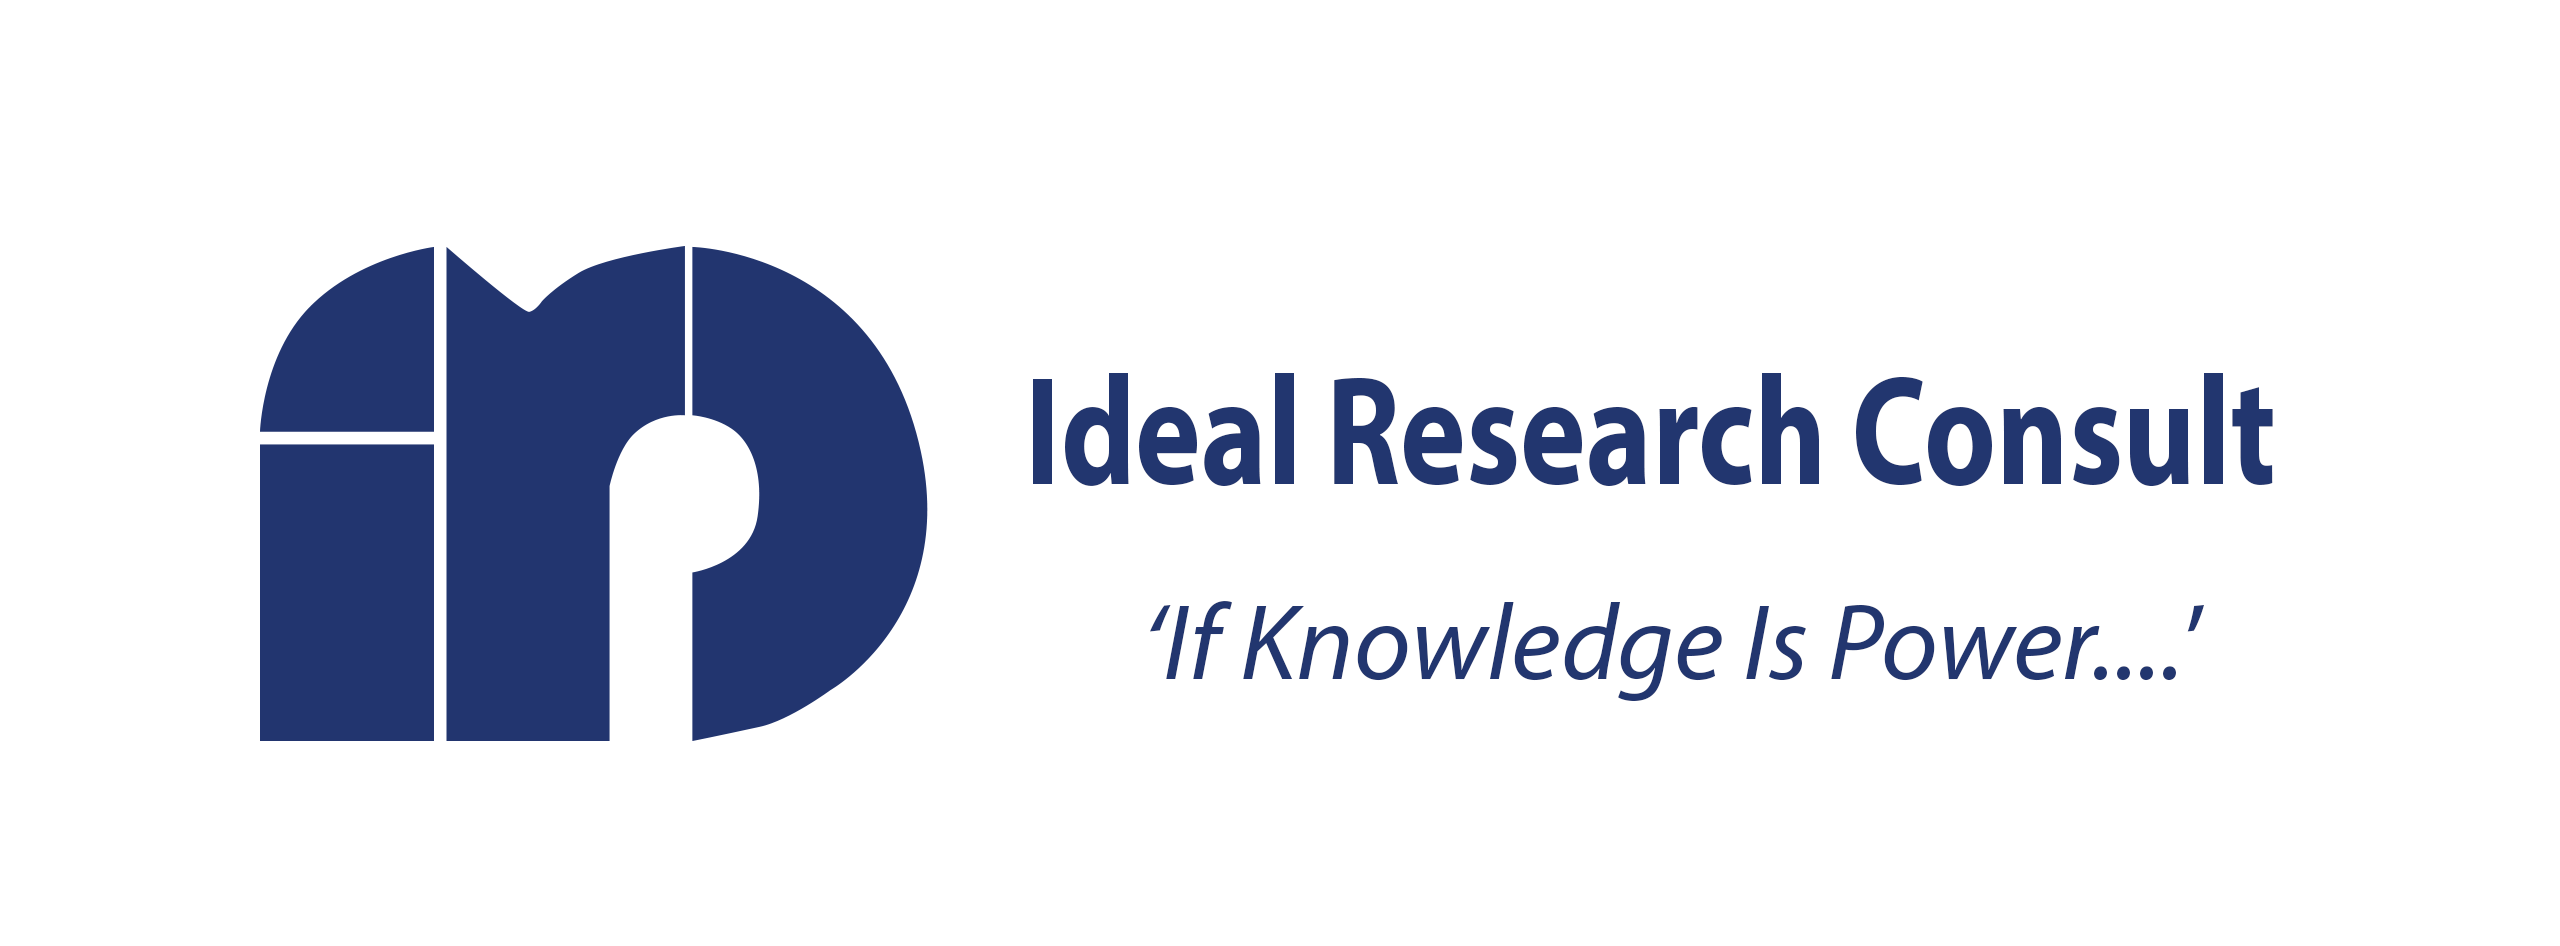 Ideal Research Consult(Pty) Ltd Logo